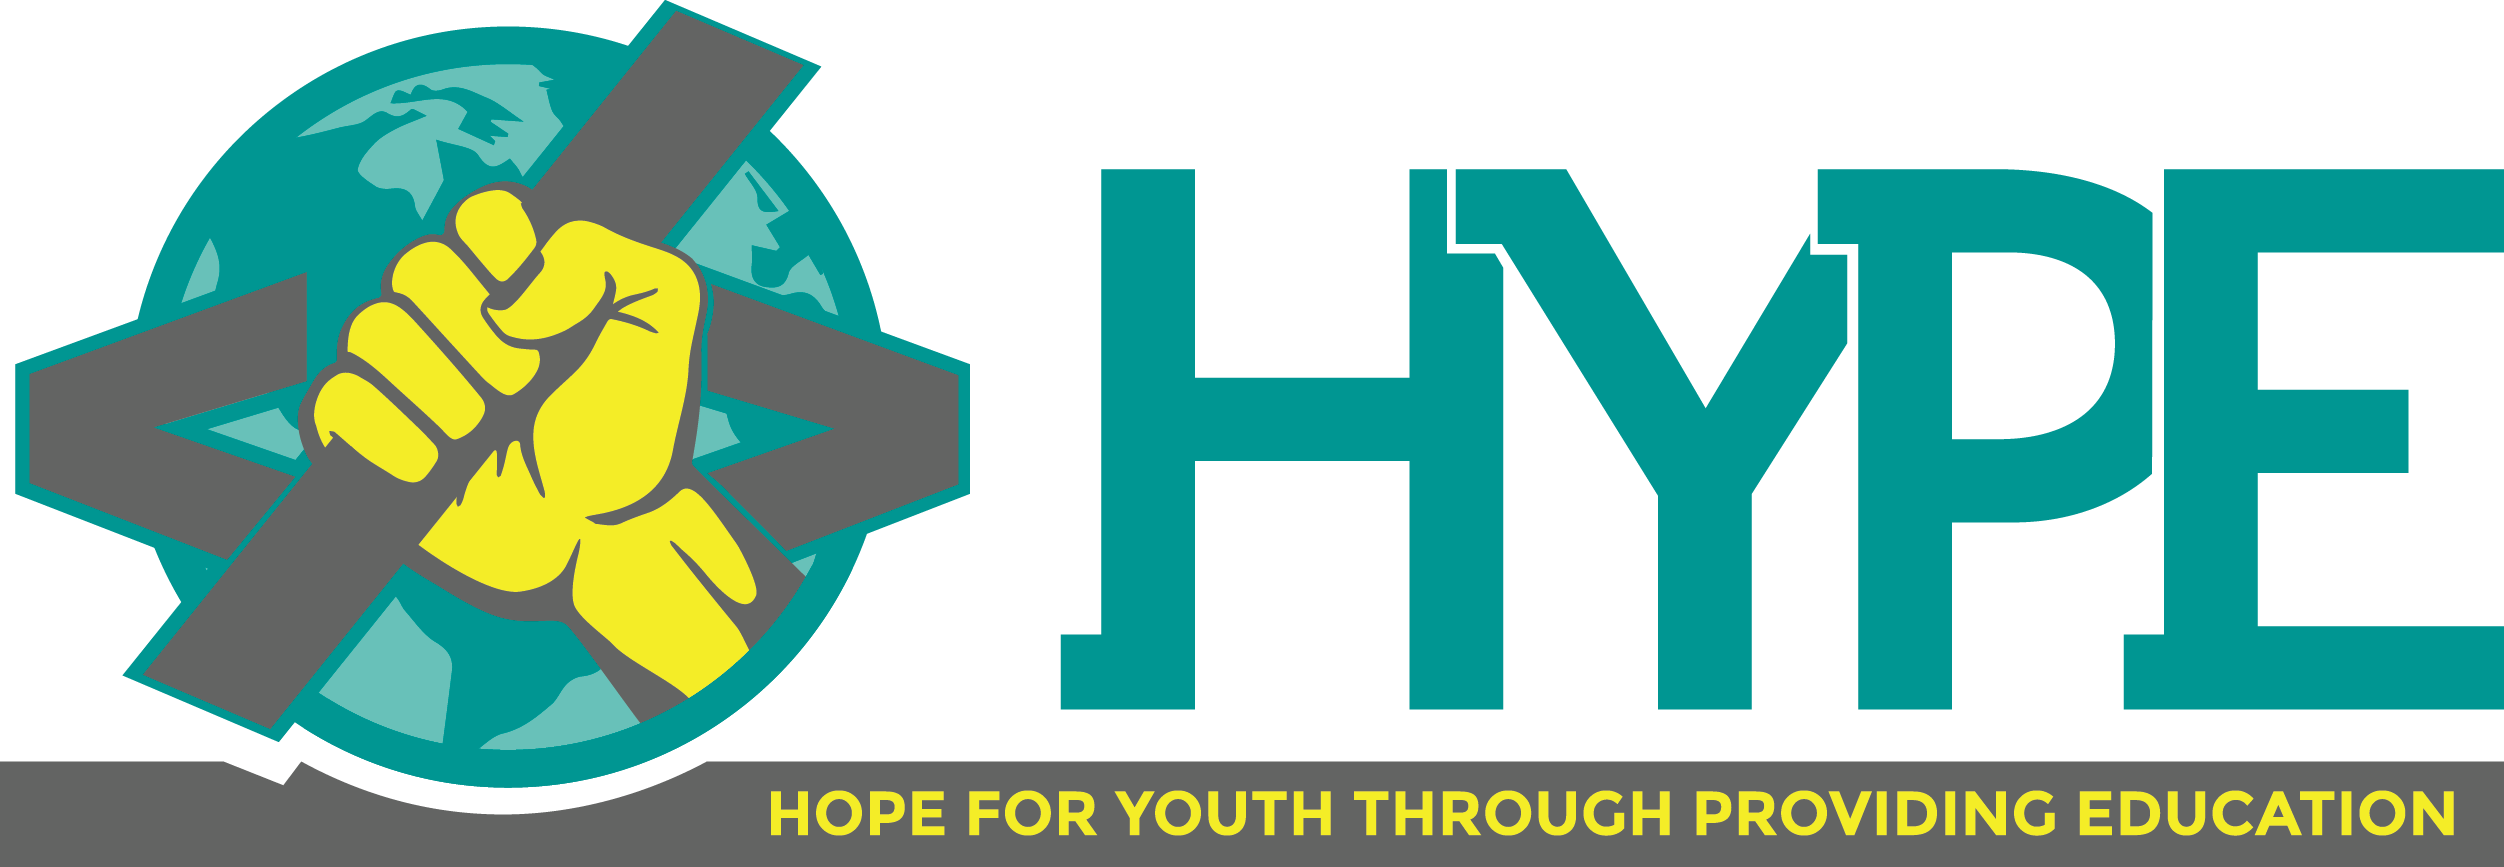 UPDATED-HYPE_full_logo